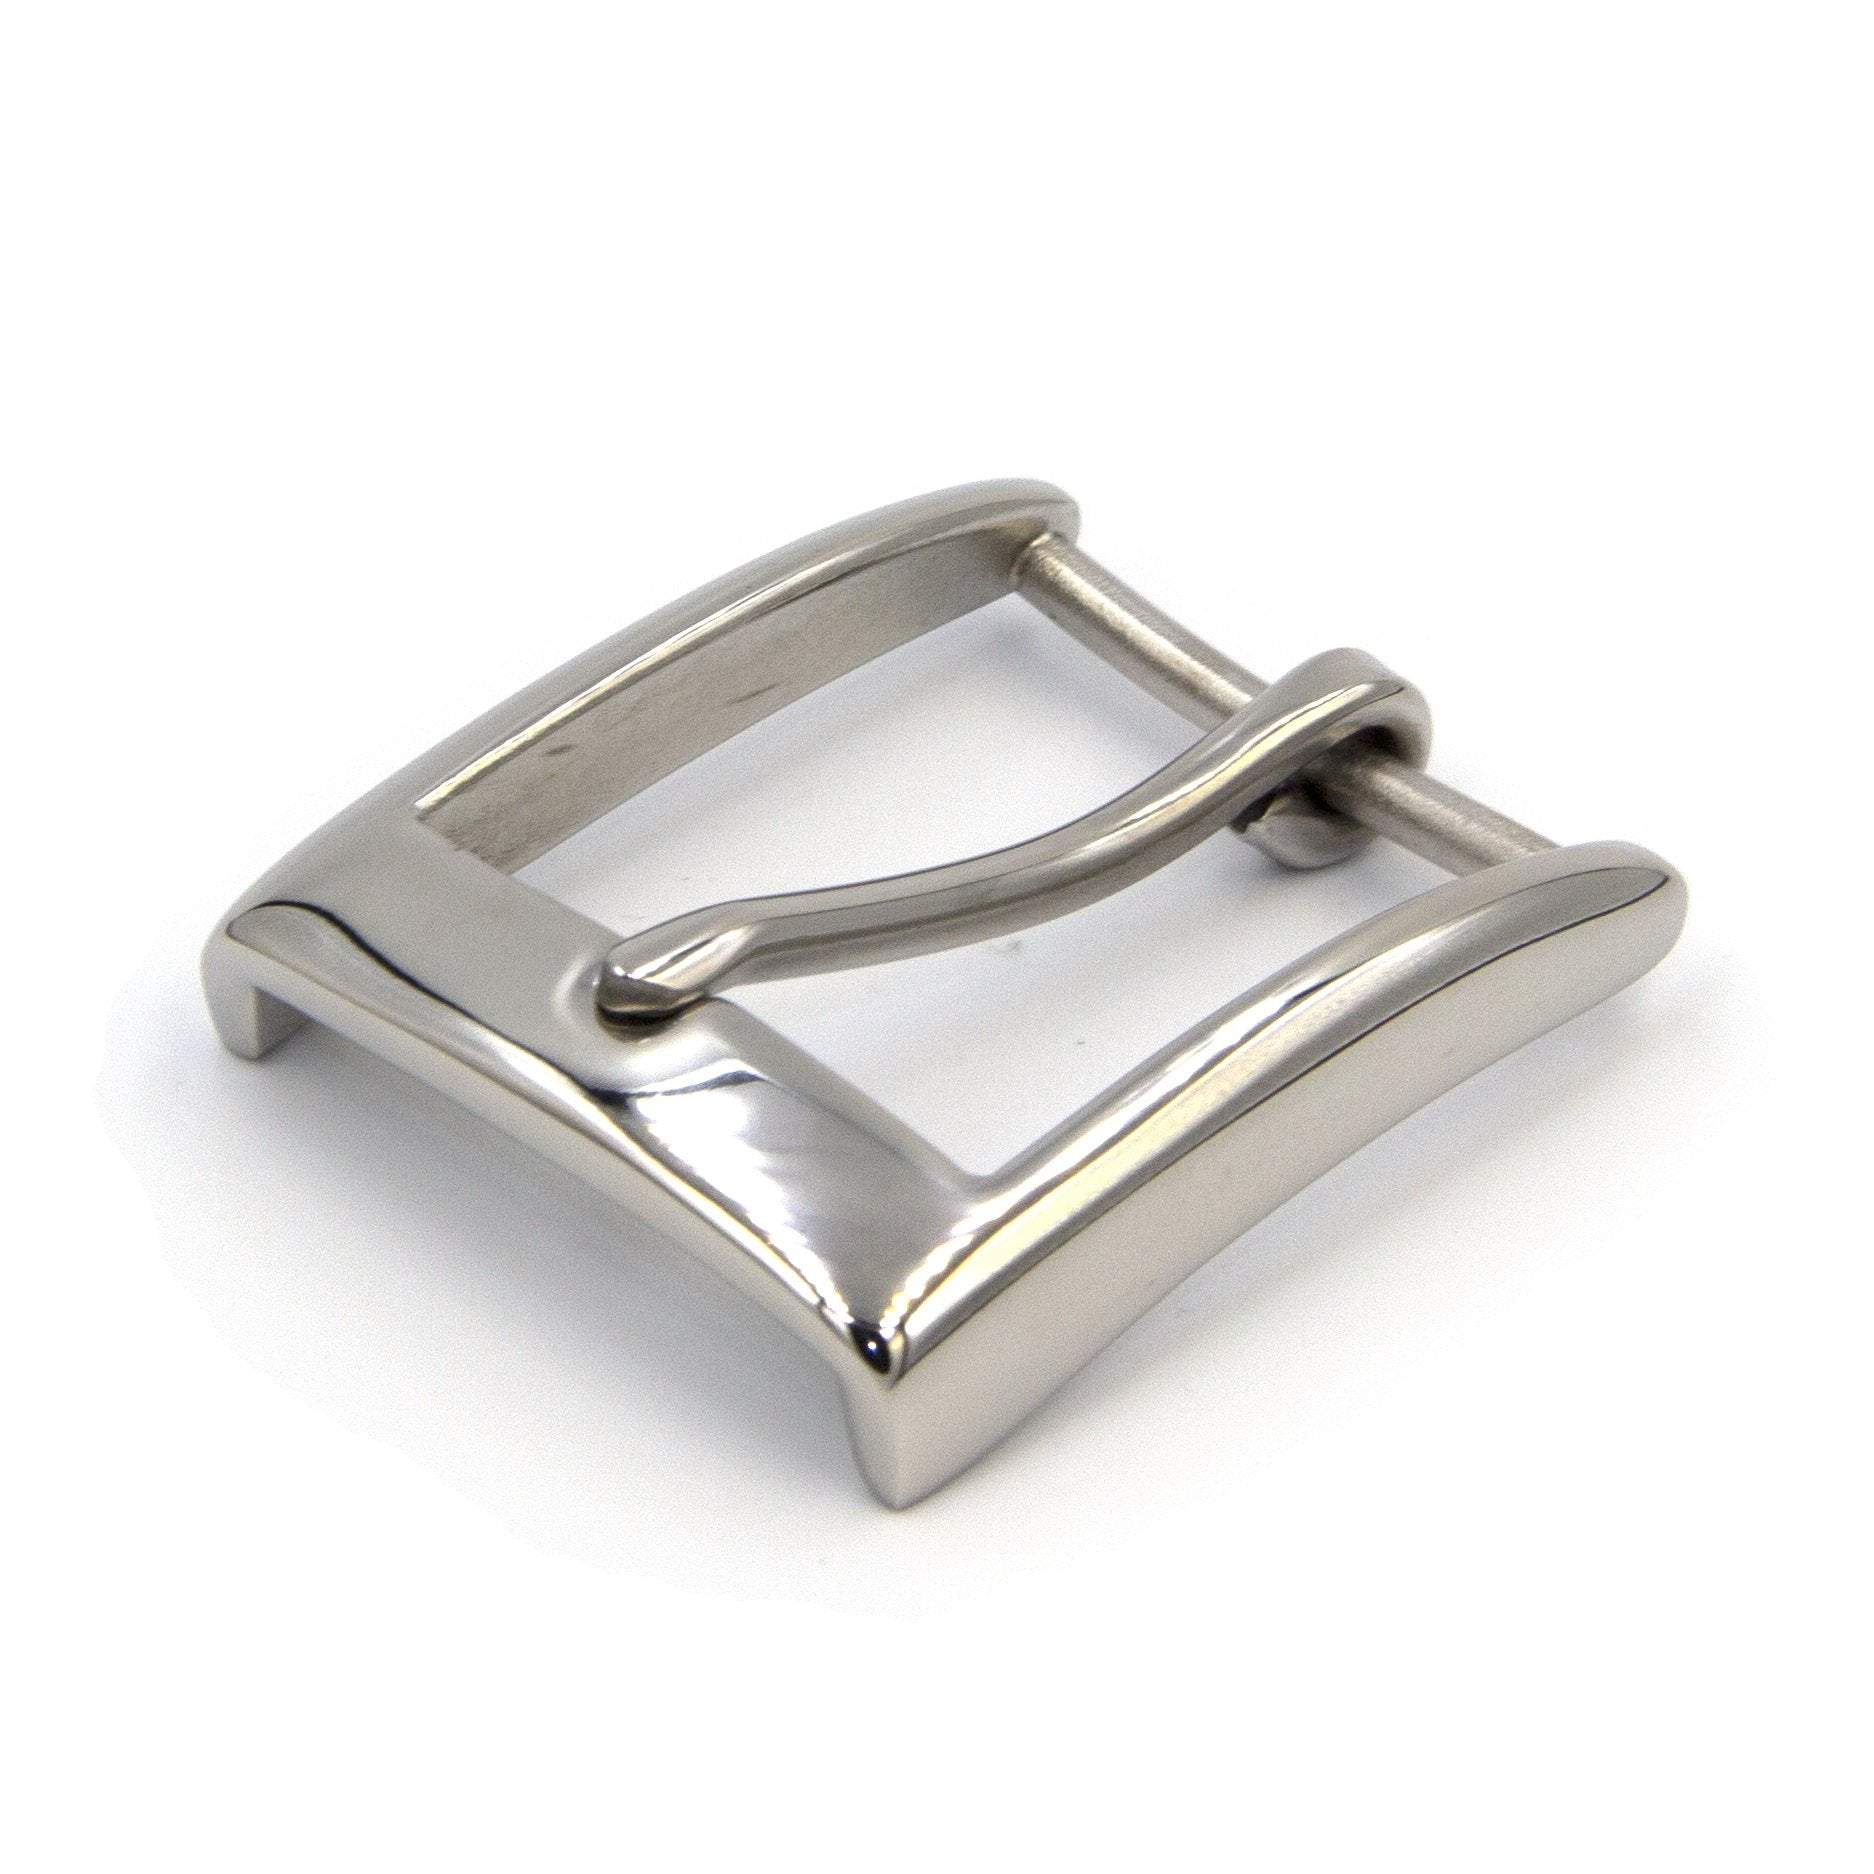 Buckle For Leather Crafts, Shiny Finish, Stainless - Metal Field